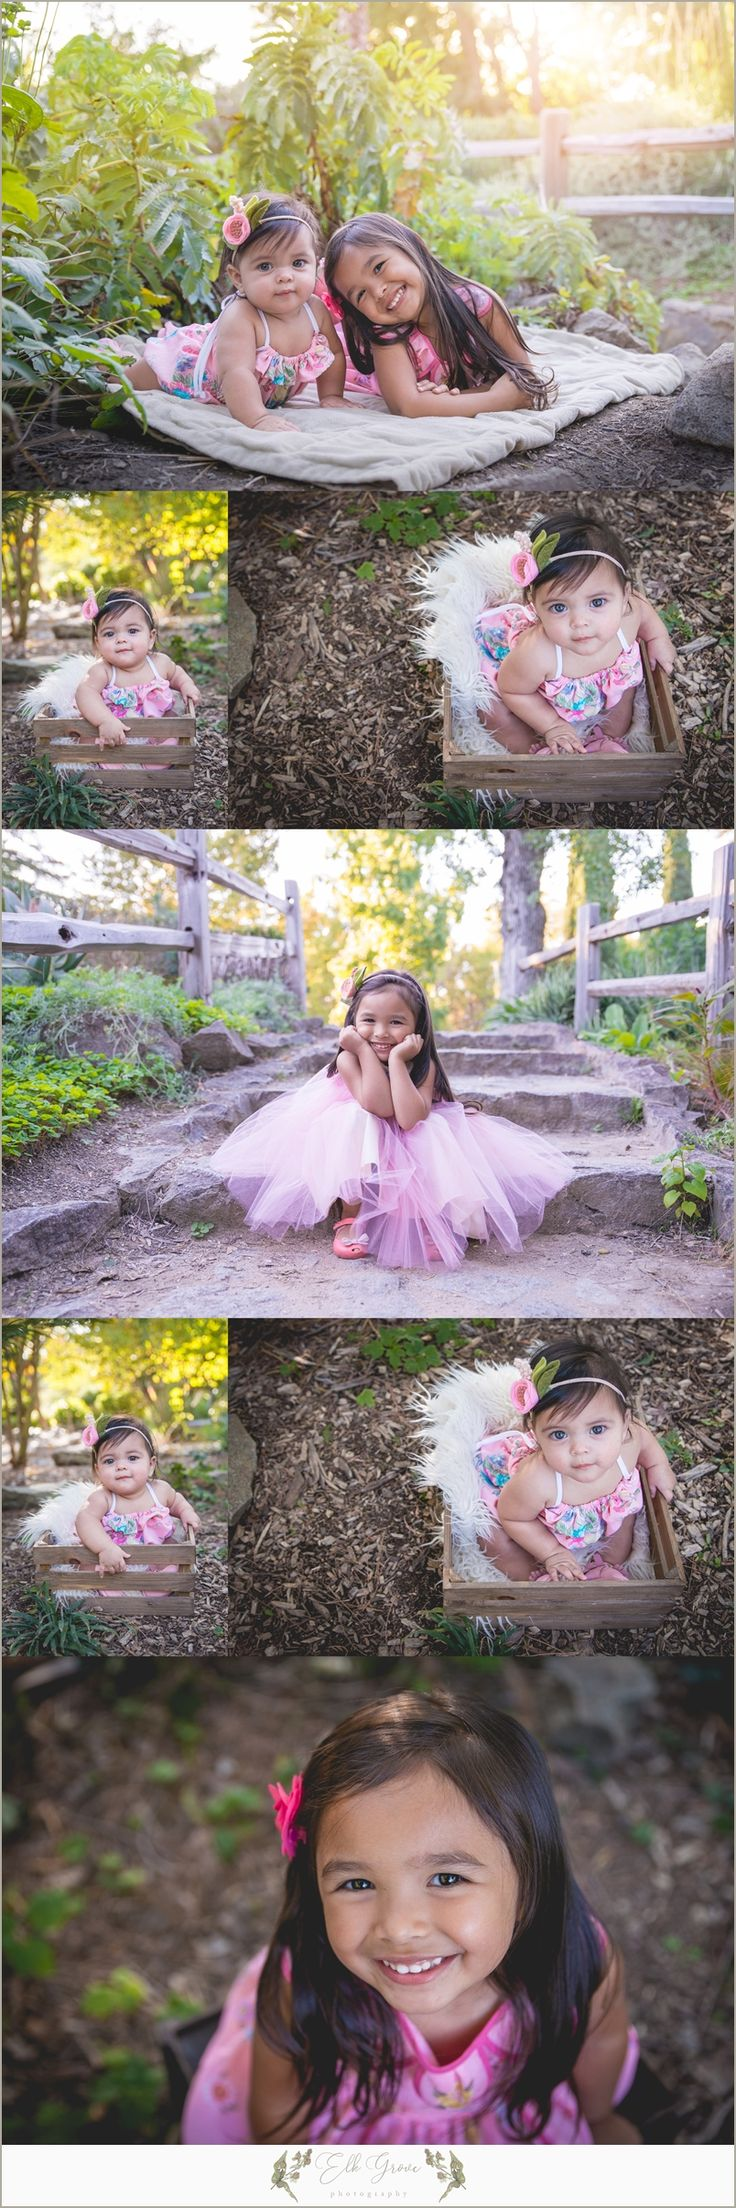 Sisters. Siblings. Family Photography by Elk Grove Photography - Natural Light - Posing Ideas for Families, Siblings, Parents, Couples, and Large Groups. Unposed Candid Ideas. Family Photography Outfit Ideas and Color Palettes. Sacramento, CA.